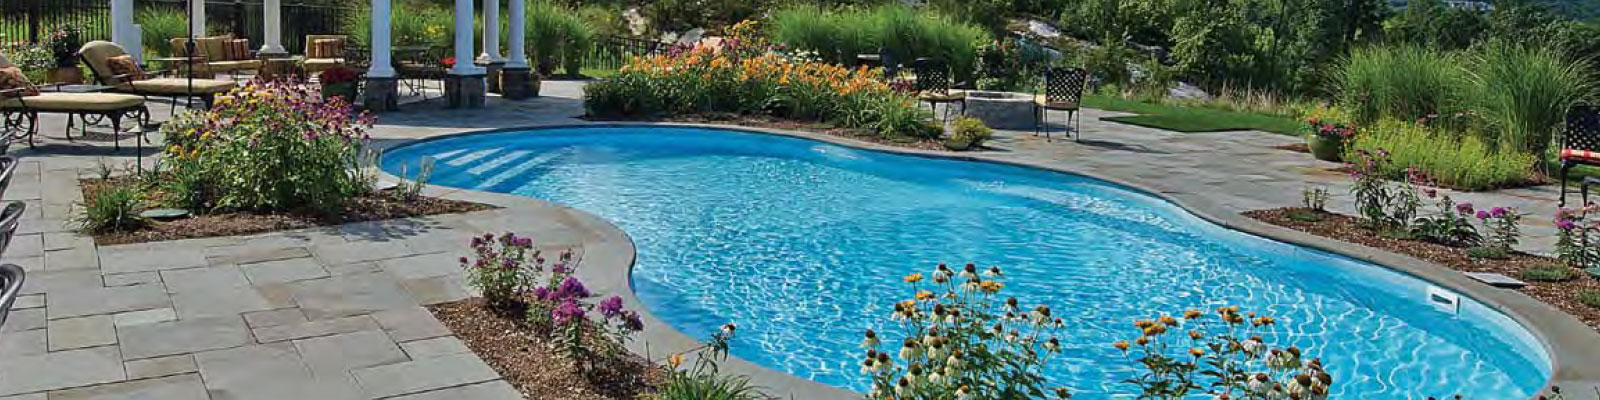 Zagers Pool And Spa Shaffer